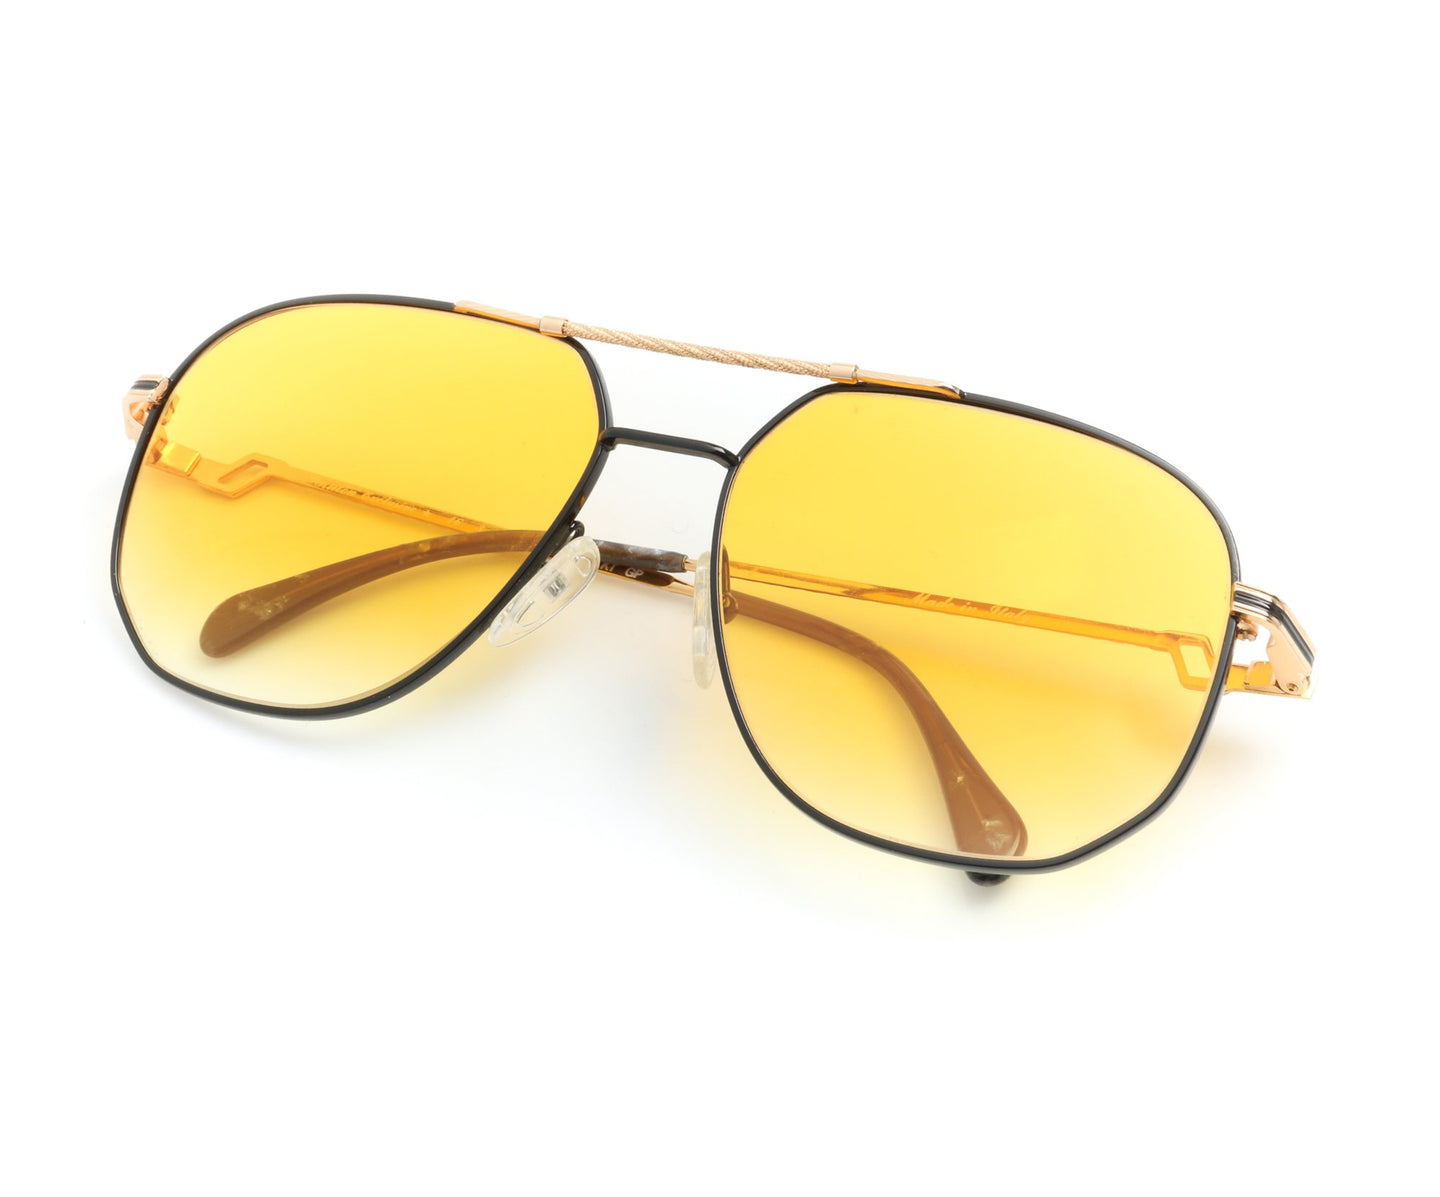 Hilton Exclusive 16 3 20KT Gold Plated (Honey Yellow), Hilton , glasses frames, eyeglasses online, eyeglass frames, mens glasses, womens glasses, buy glasses online, designer eyeglasses, vintage sunglasses, retro sunglasses, vintage glasses, sunglass, eyeglass, glasses, lens, vintage frames company, vf